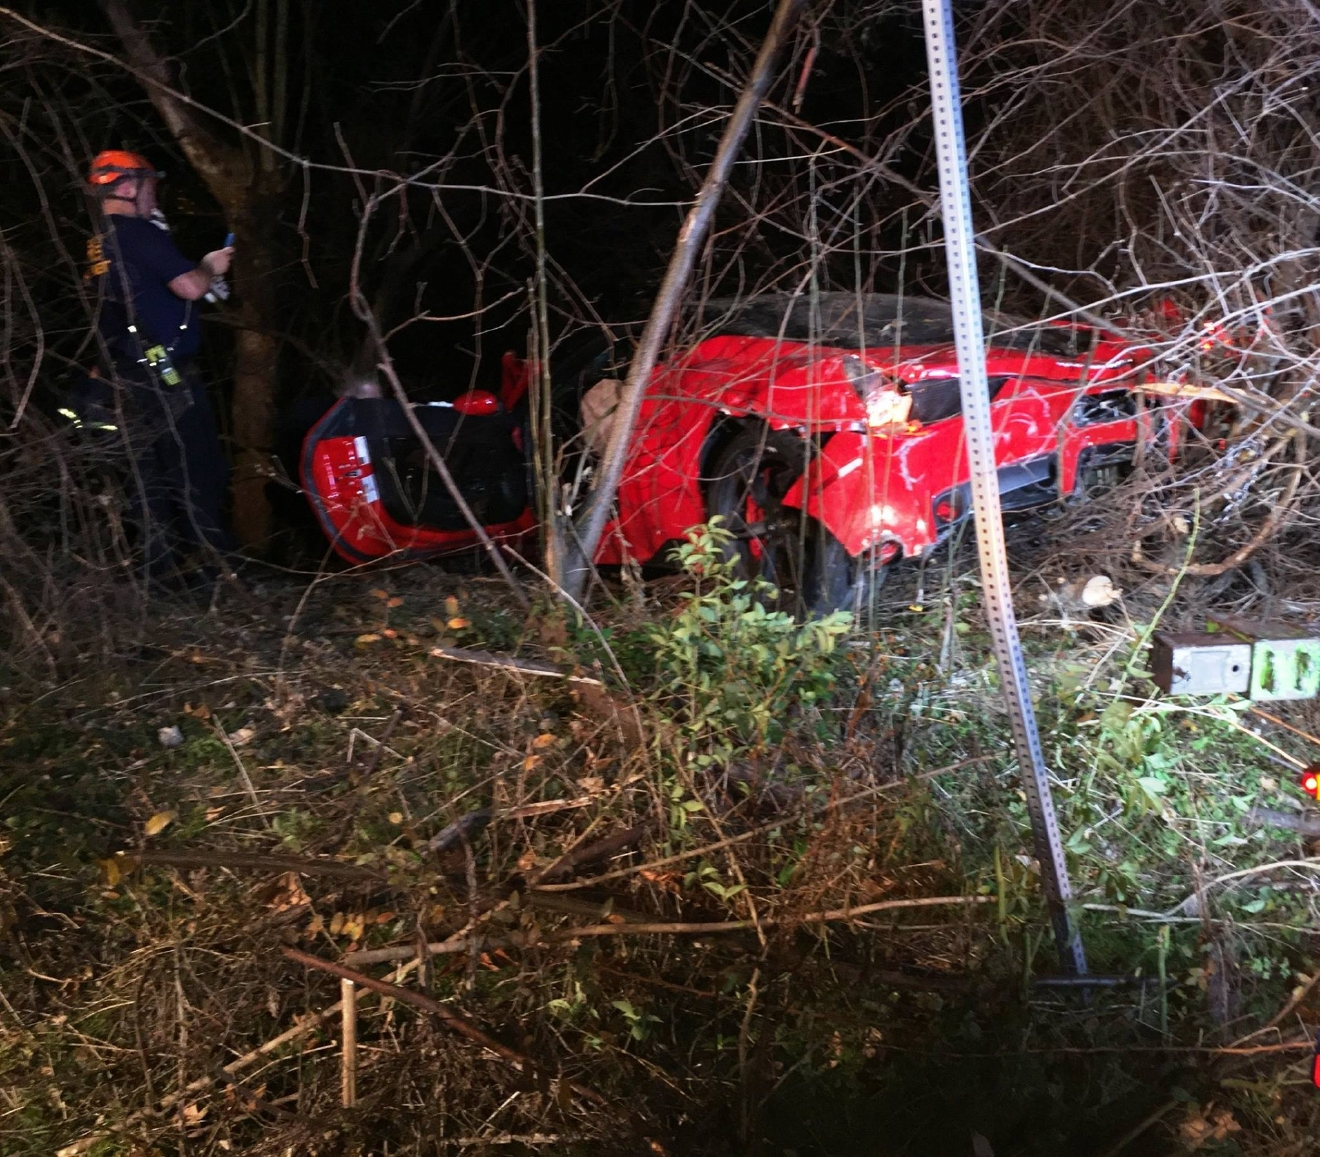 The Austin Fire Department says a limited-edition Ferrari worth $385,000 ended up at the bottom of a ravine in West Austin, Texas after the driver failed to make a turn at high speed and sent the car airborne. (AFD Battalion Chief David Brietzke)